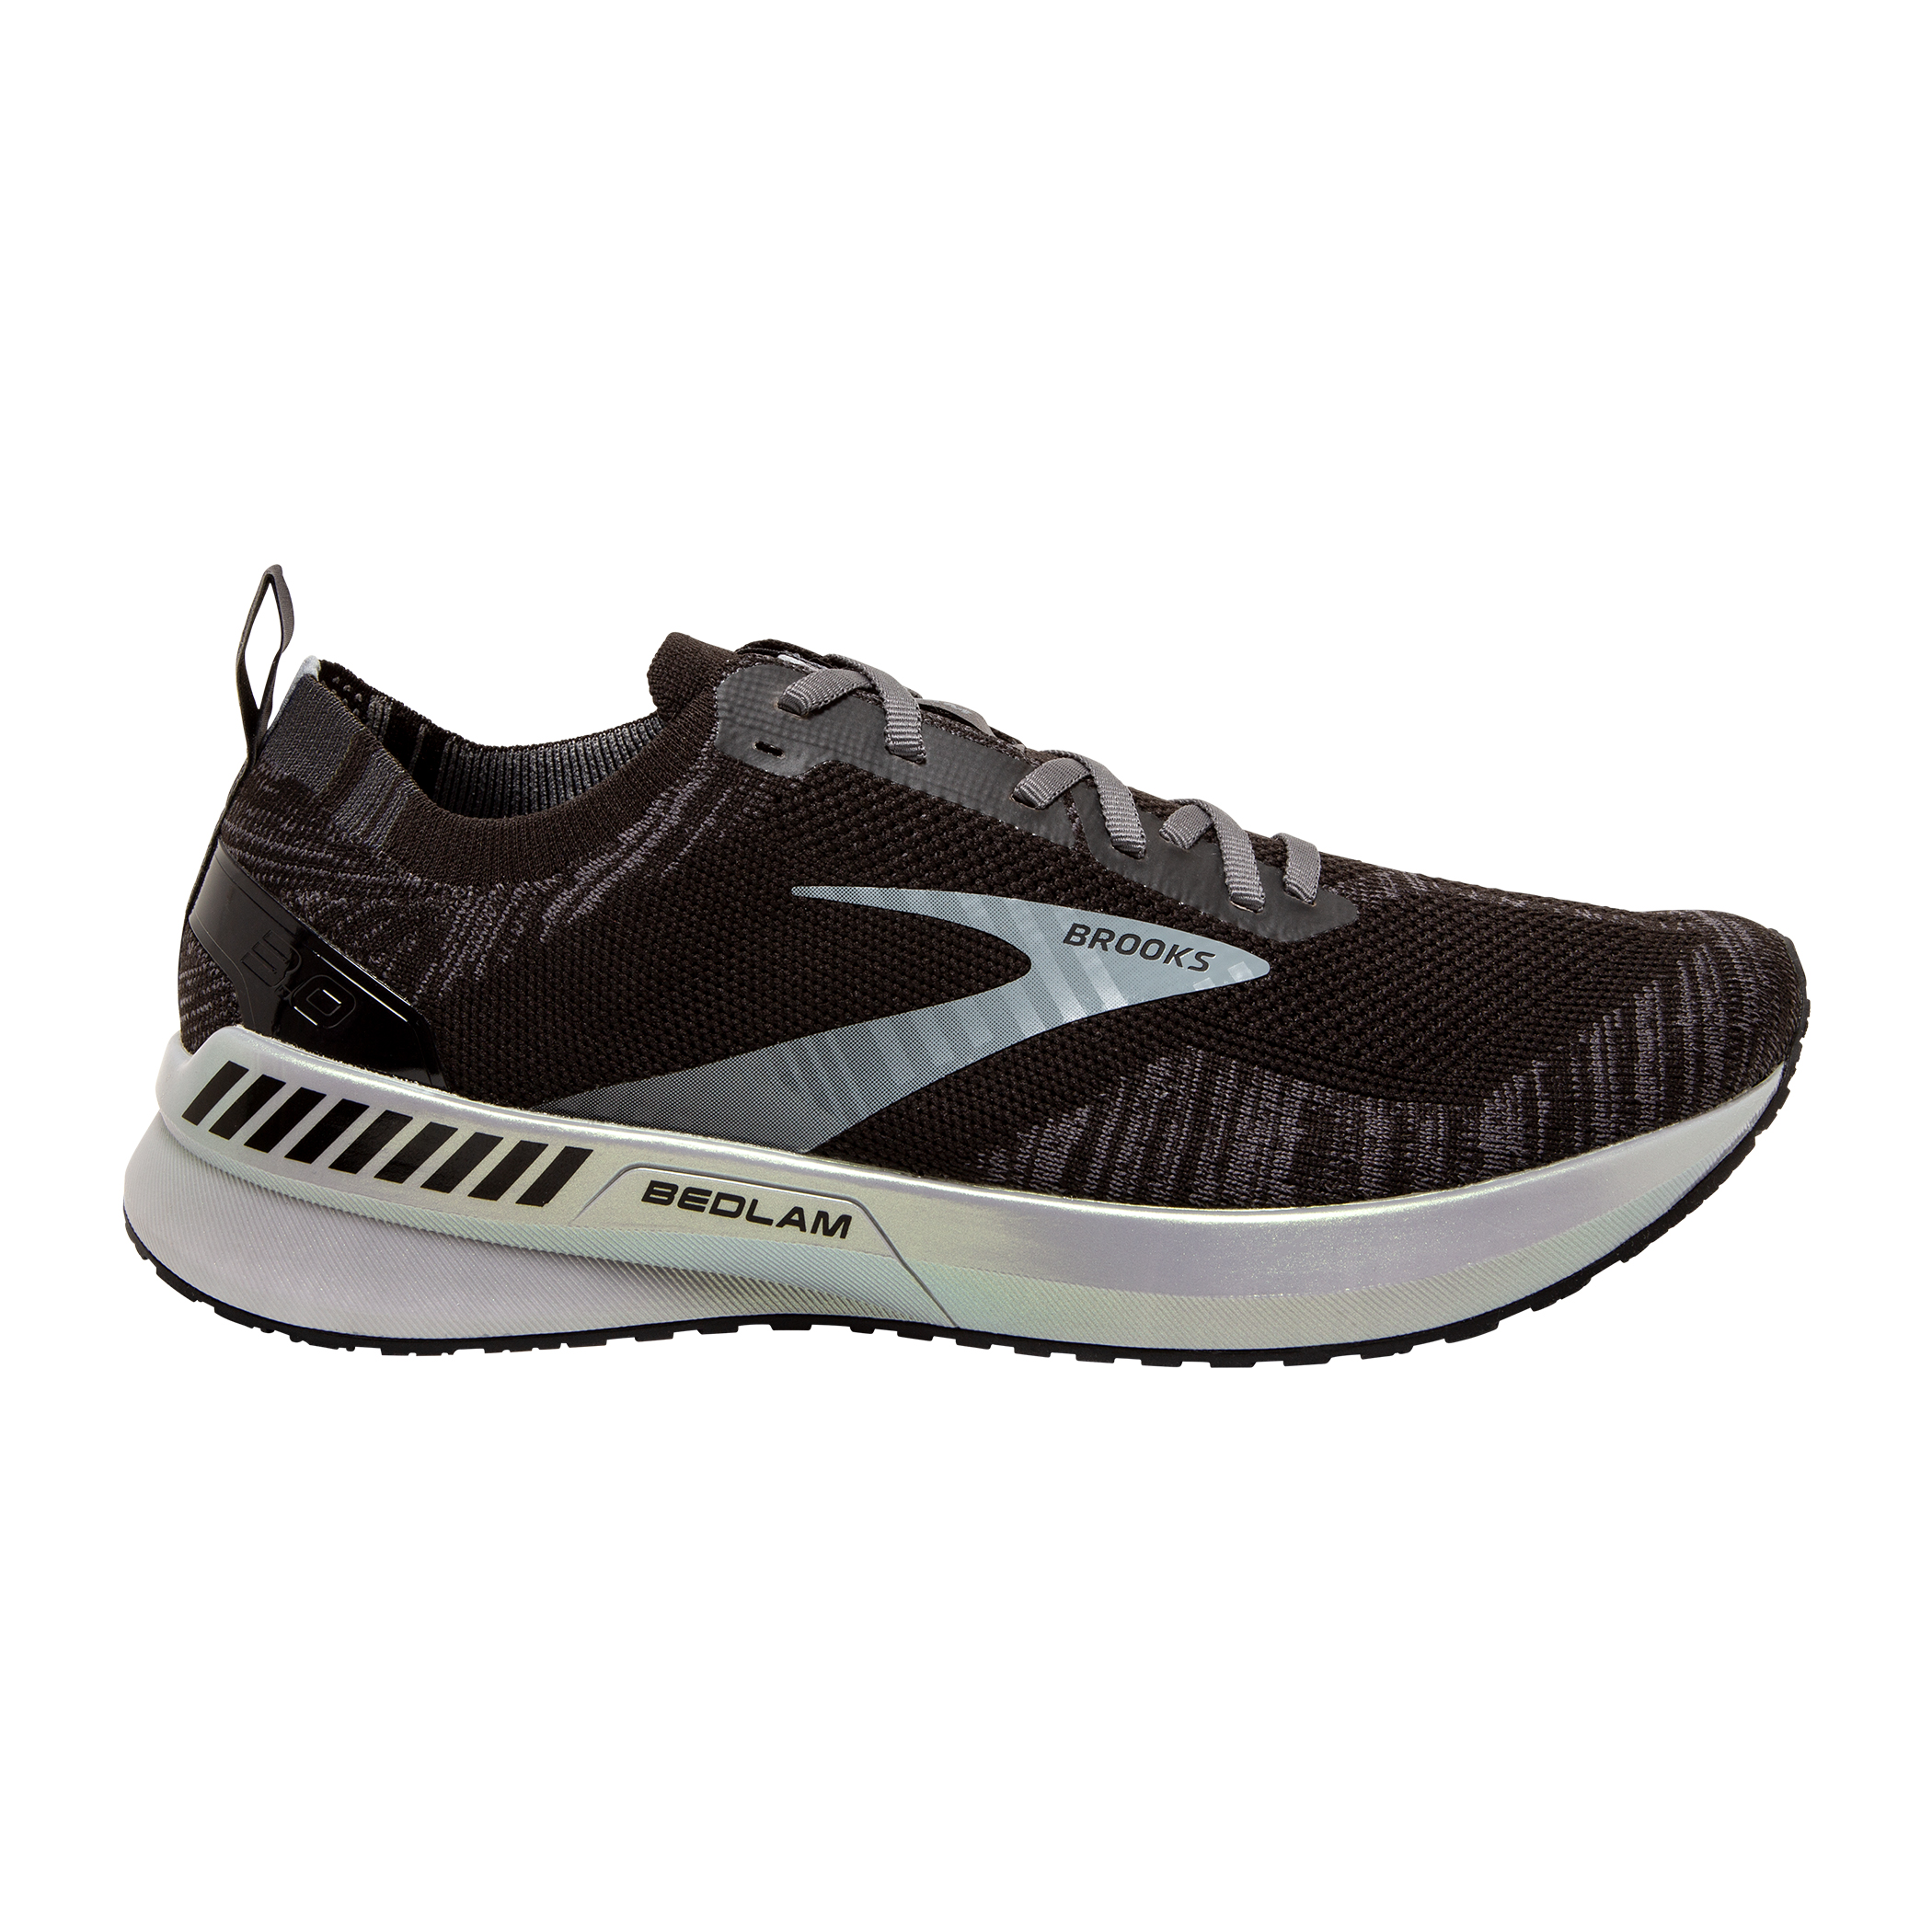 Men's Brooks Bedlam 3